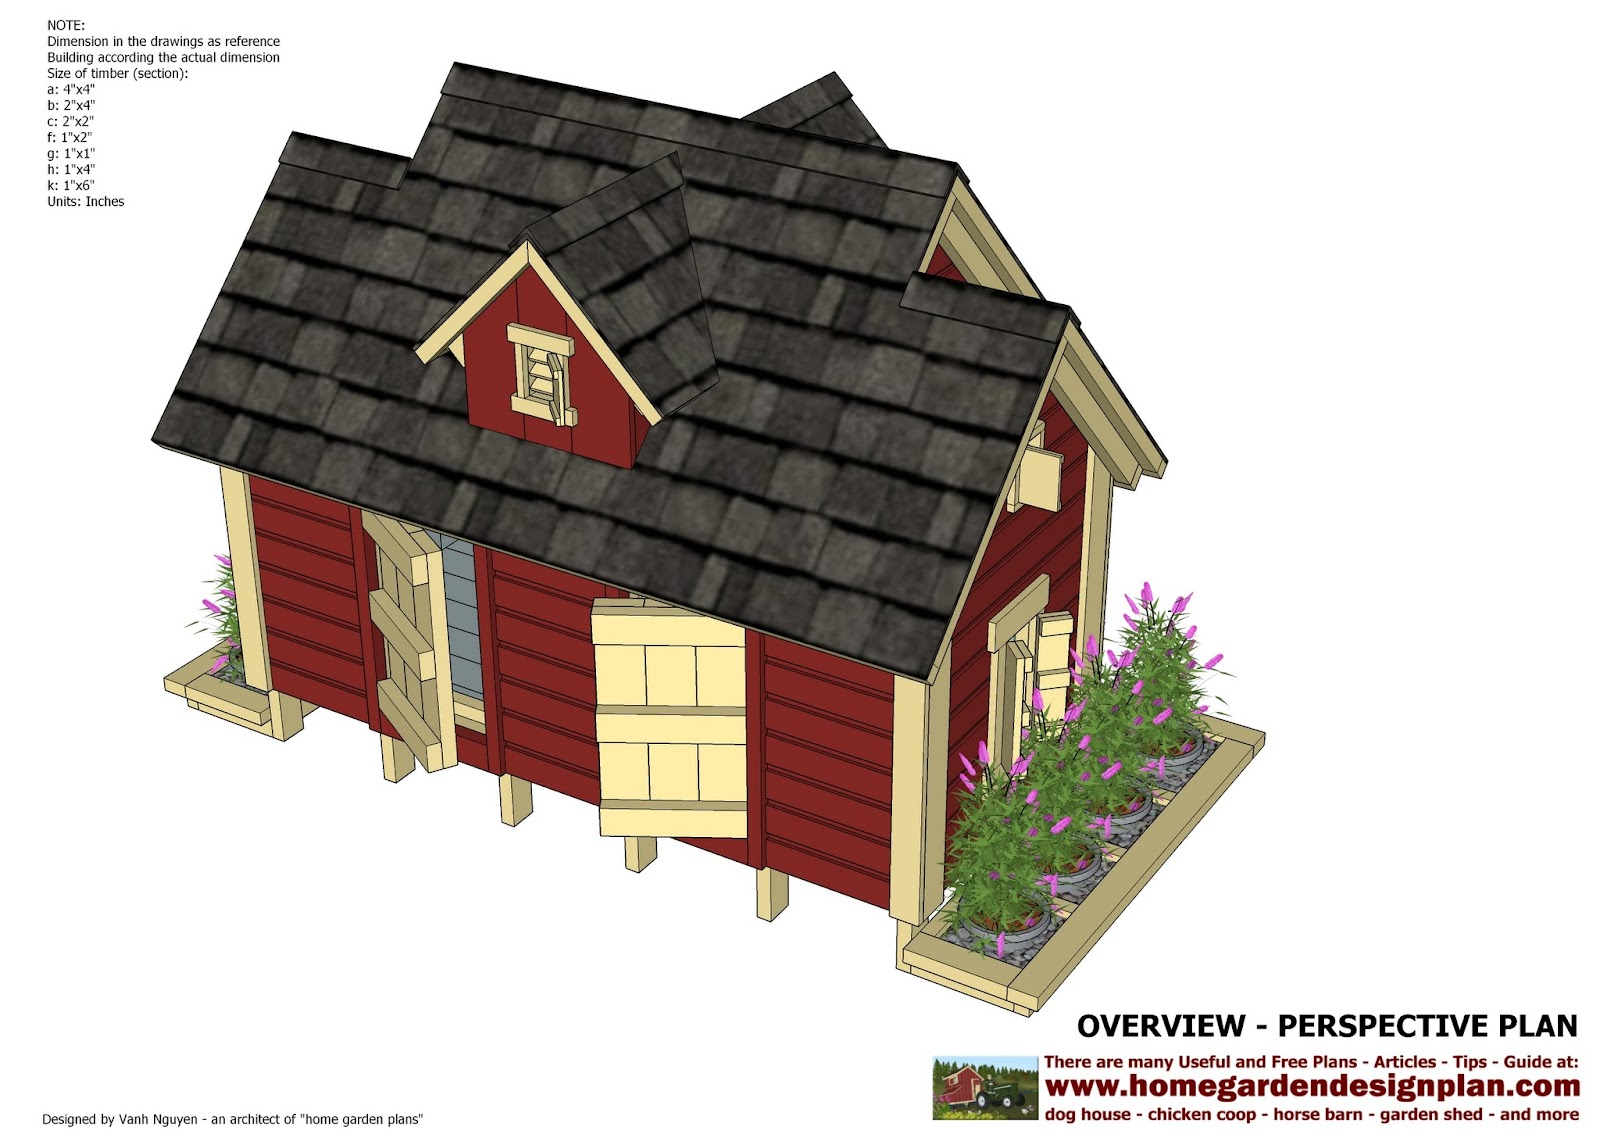 Suncast garden storage shed insulated dog house plans pdf for Insulated dog house plans pdf